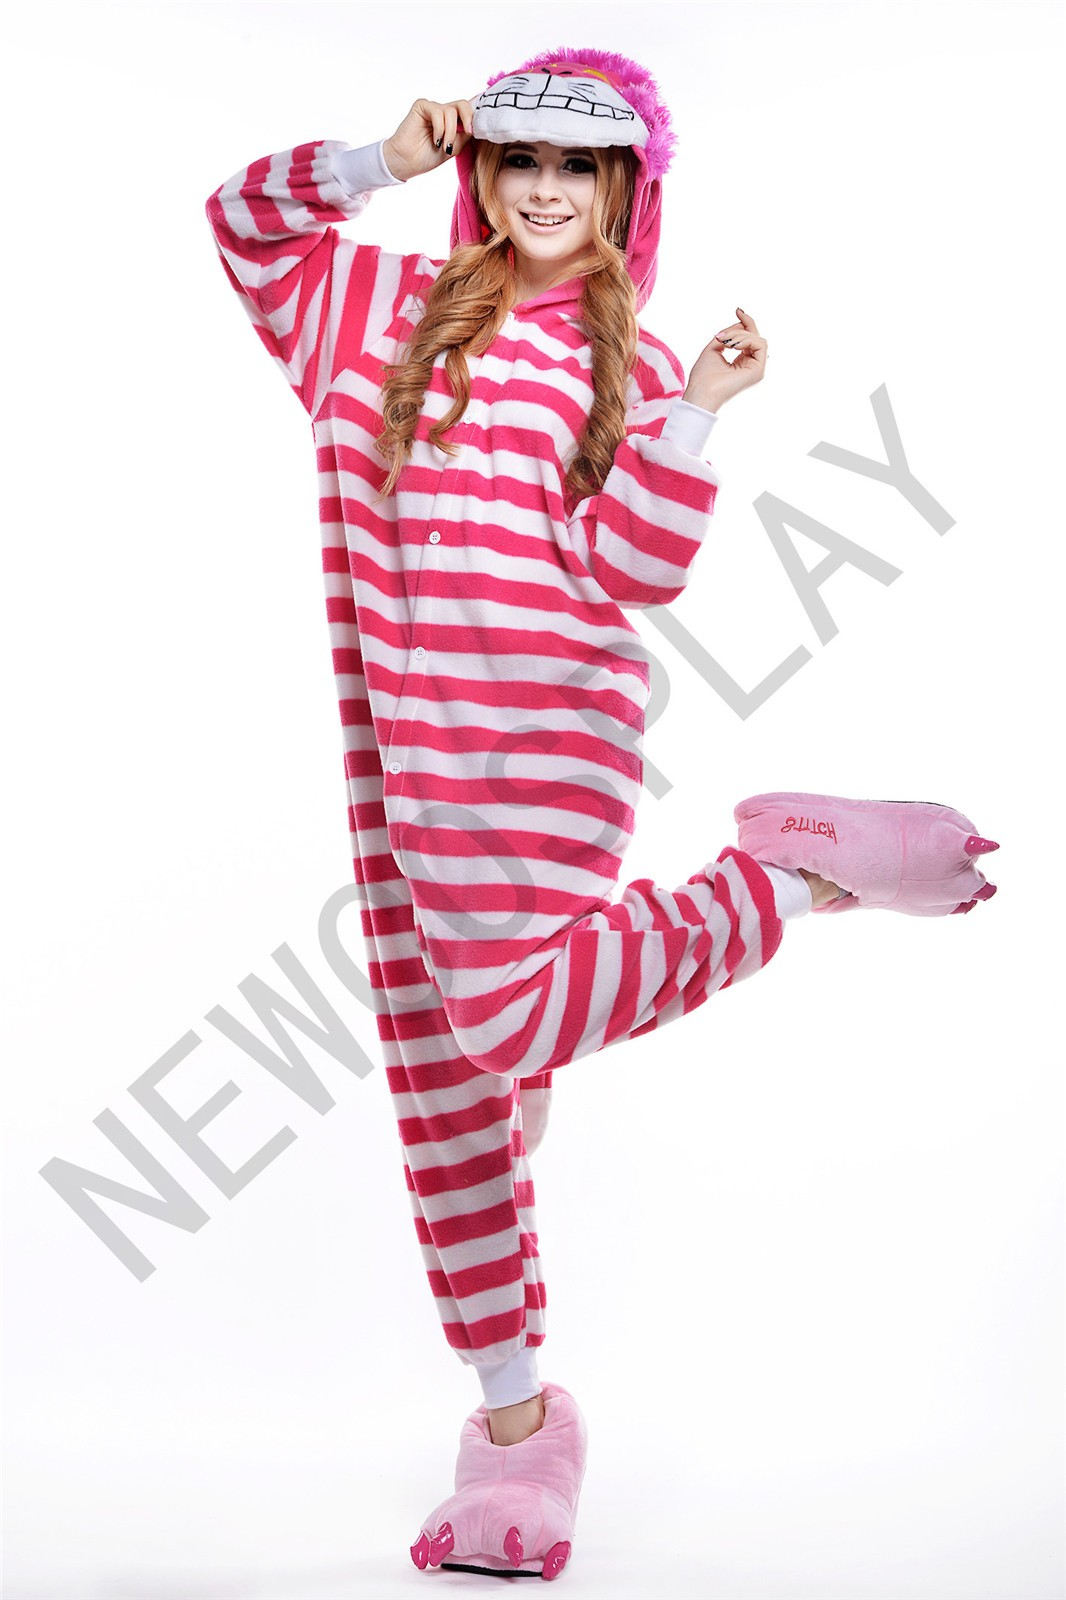 Cheshire Cat onesie by NEWCOSPLAY ONESIE